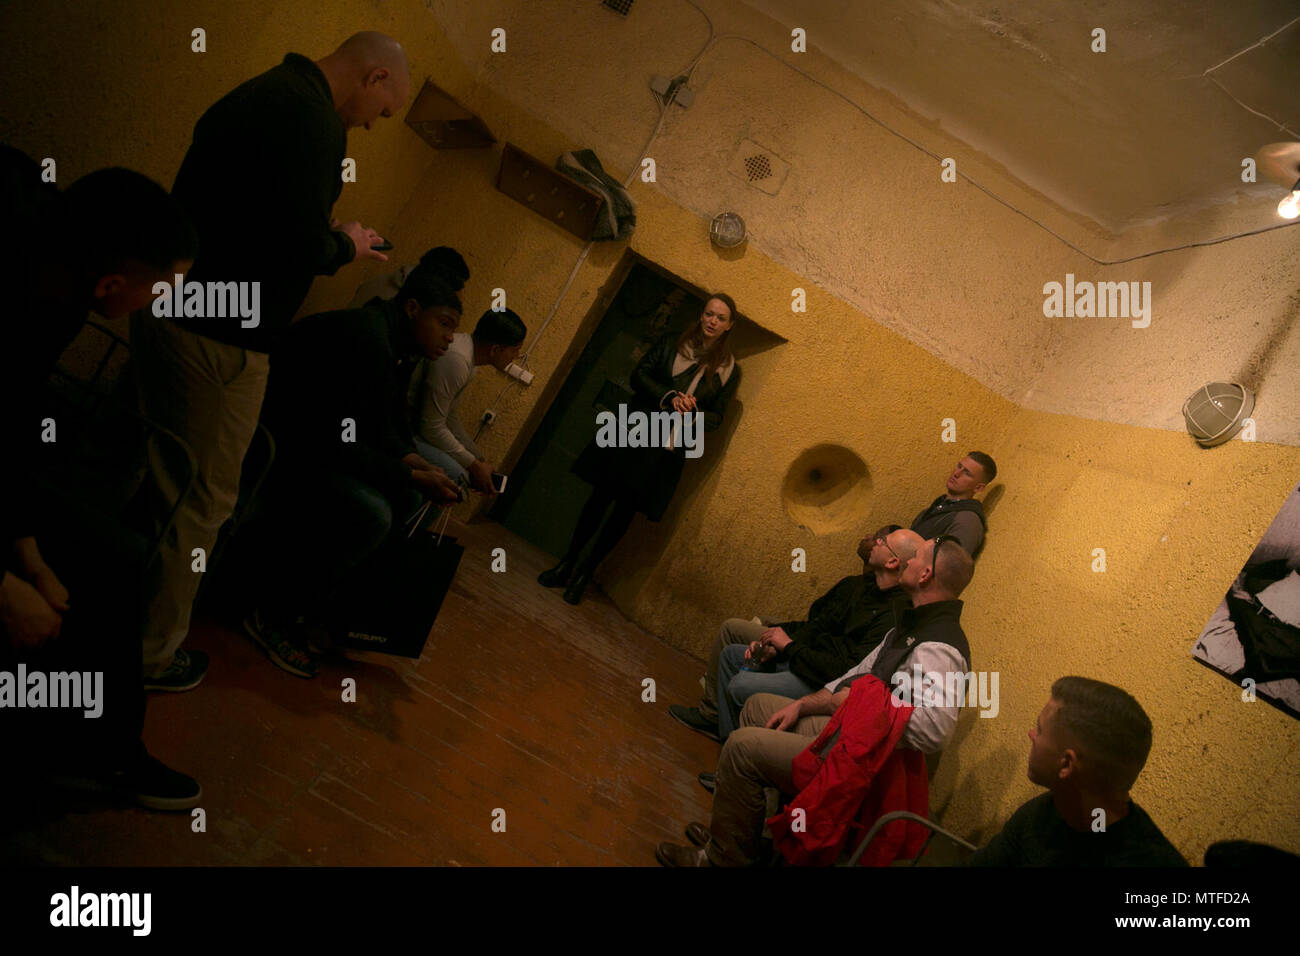 U.S. Marines with Black Sea Rotational Force 17.1  check out a holding cell during a tour of the KGB Corner House museum in Riga, Latvia, April 23, 2017. The event was part of cultural day for the Marines who got the chance to learn more about Latvian history and culture. - Stock Image